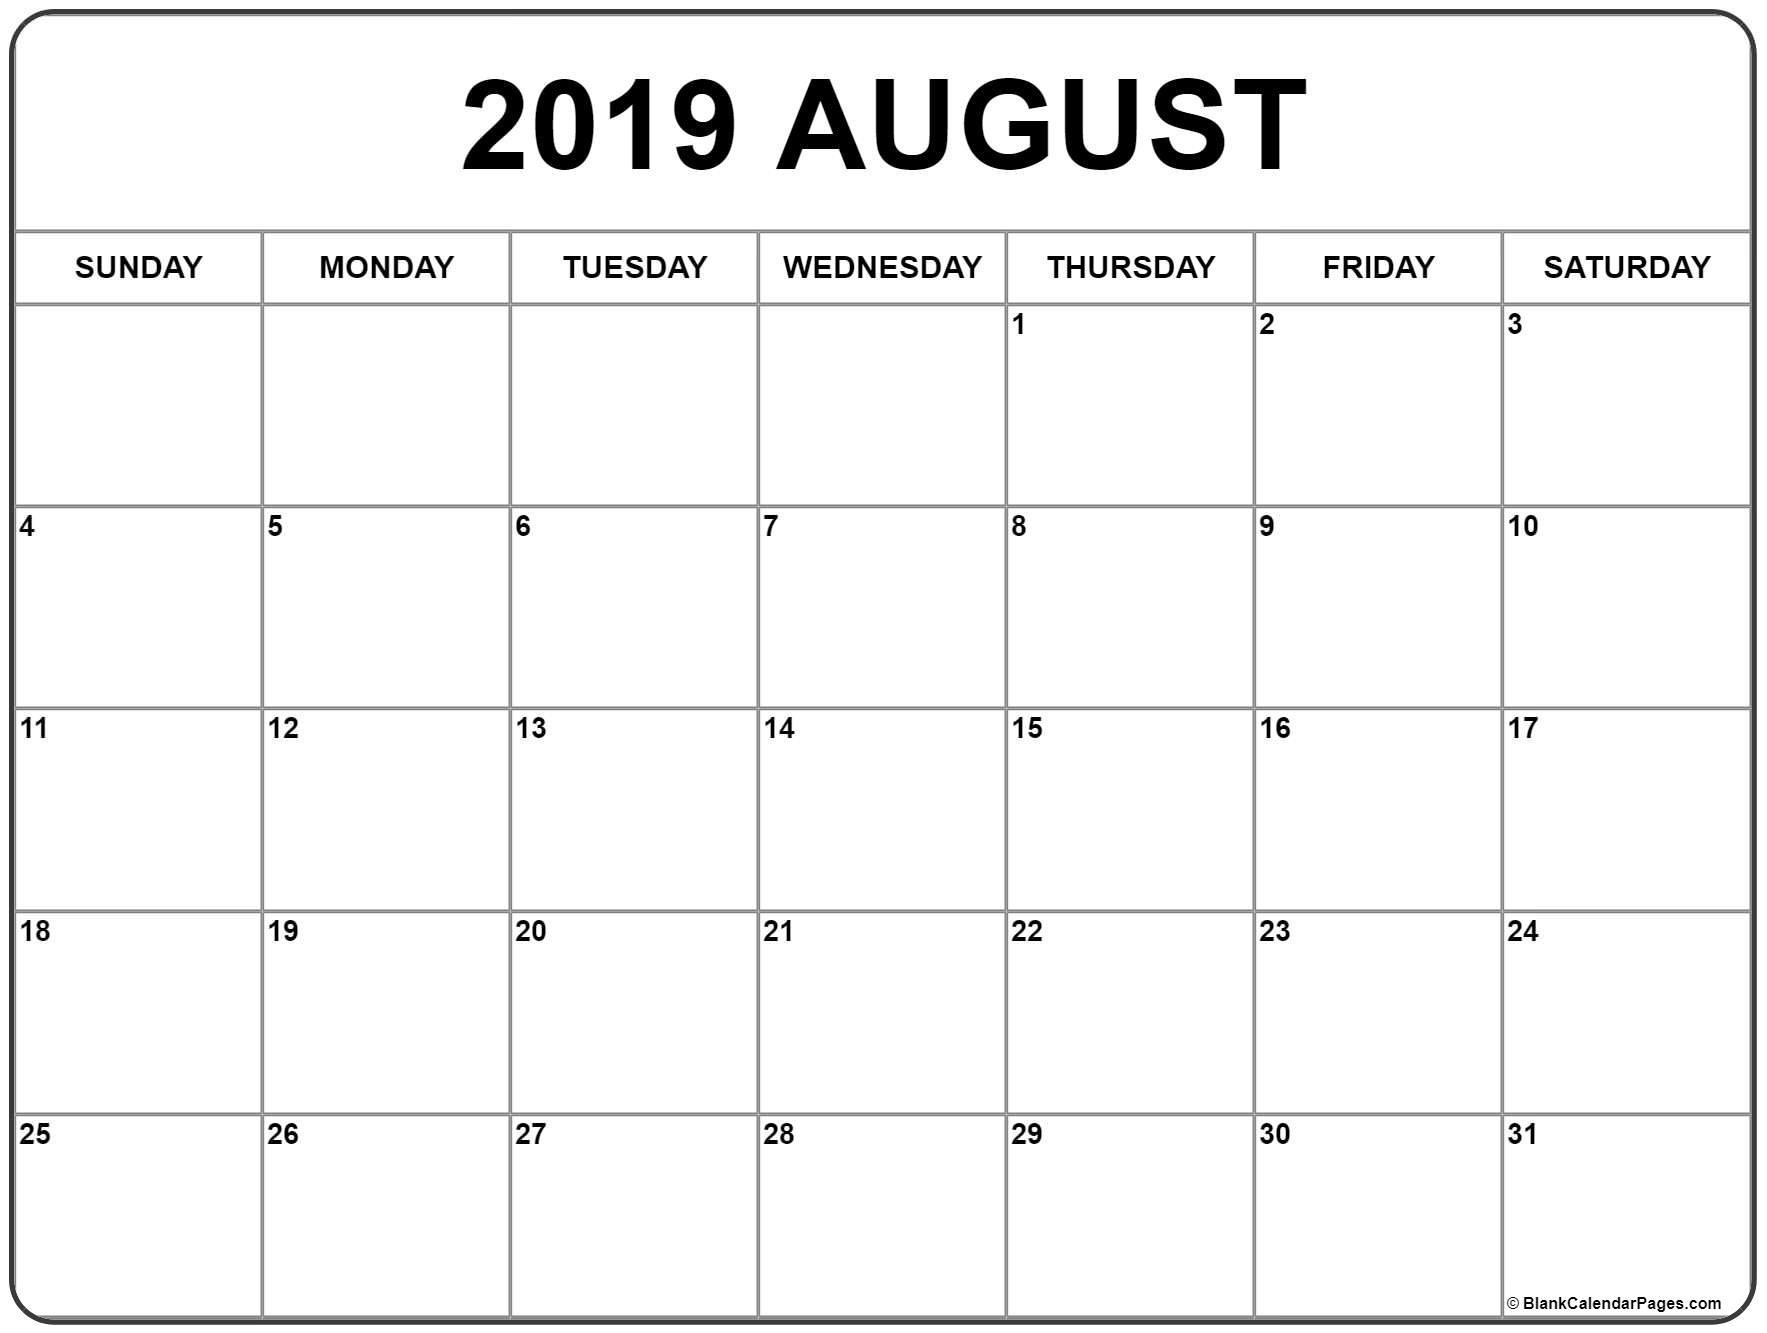 August 2019 Calendar | Free Printable Monthly Calendars-At A Glance Lined Monthly Calendar Printable